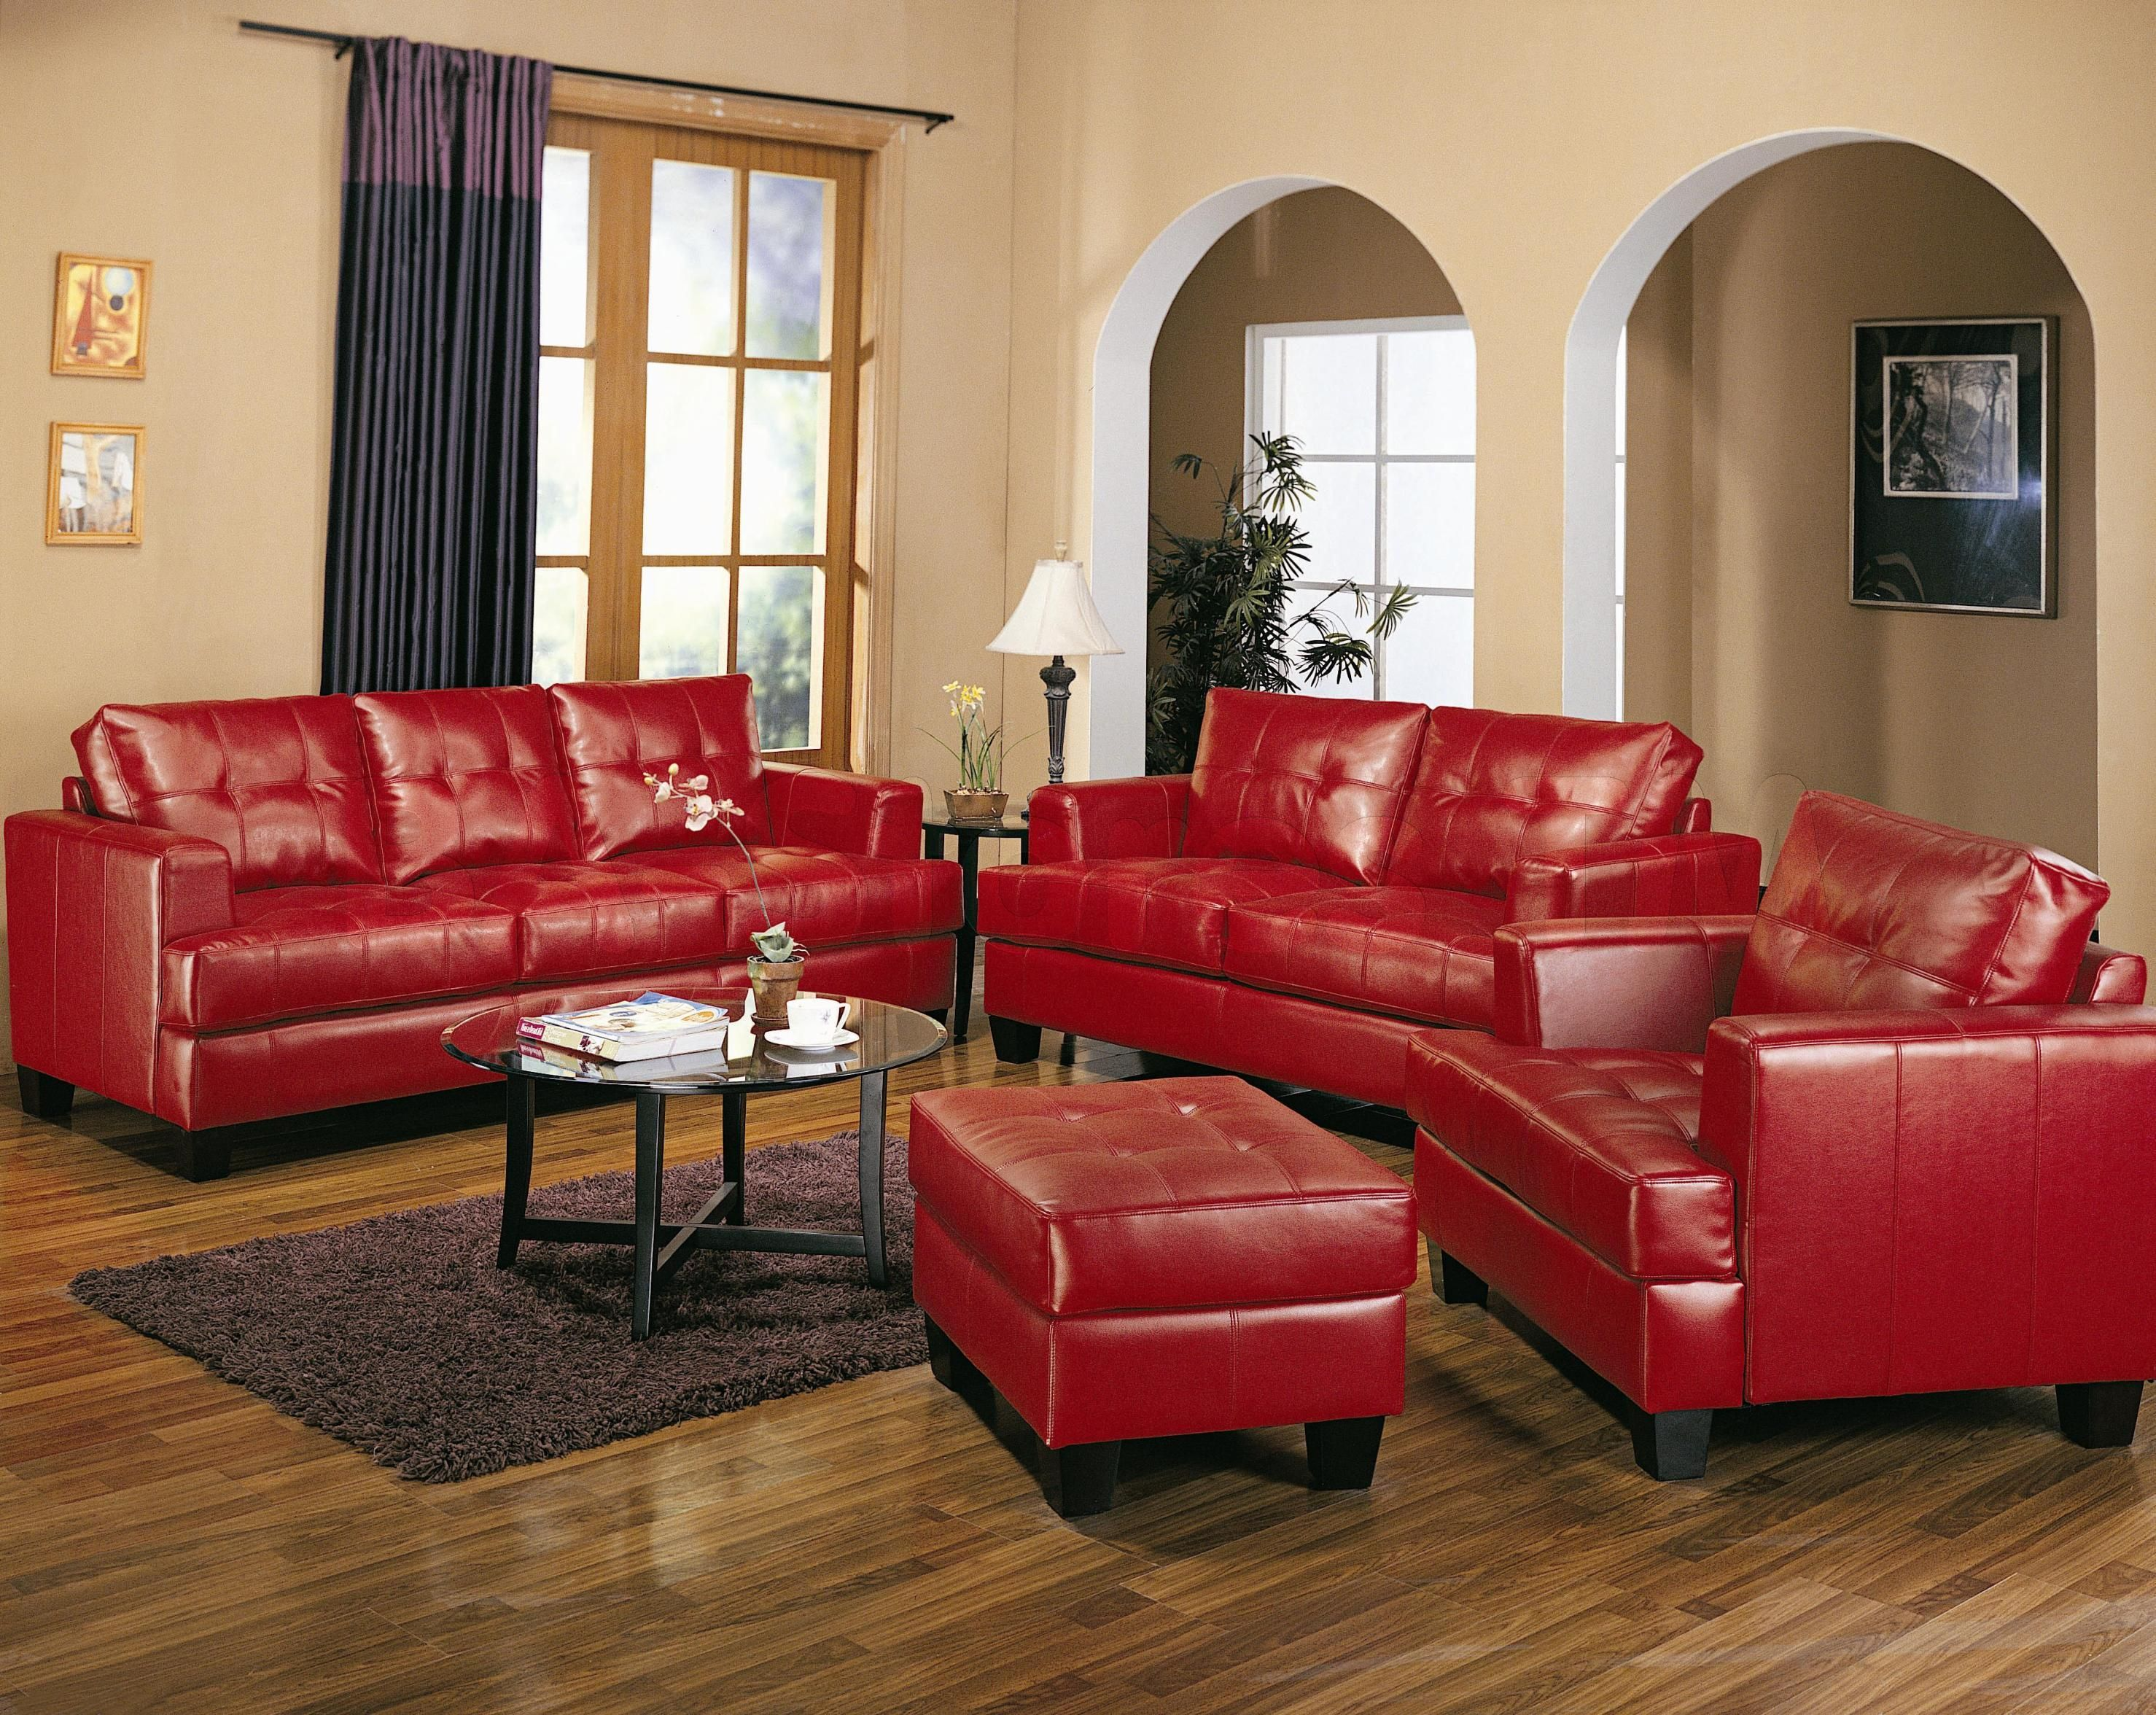 rooms with a red leather couch Google Search